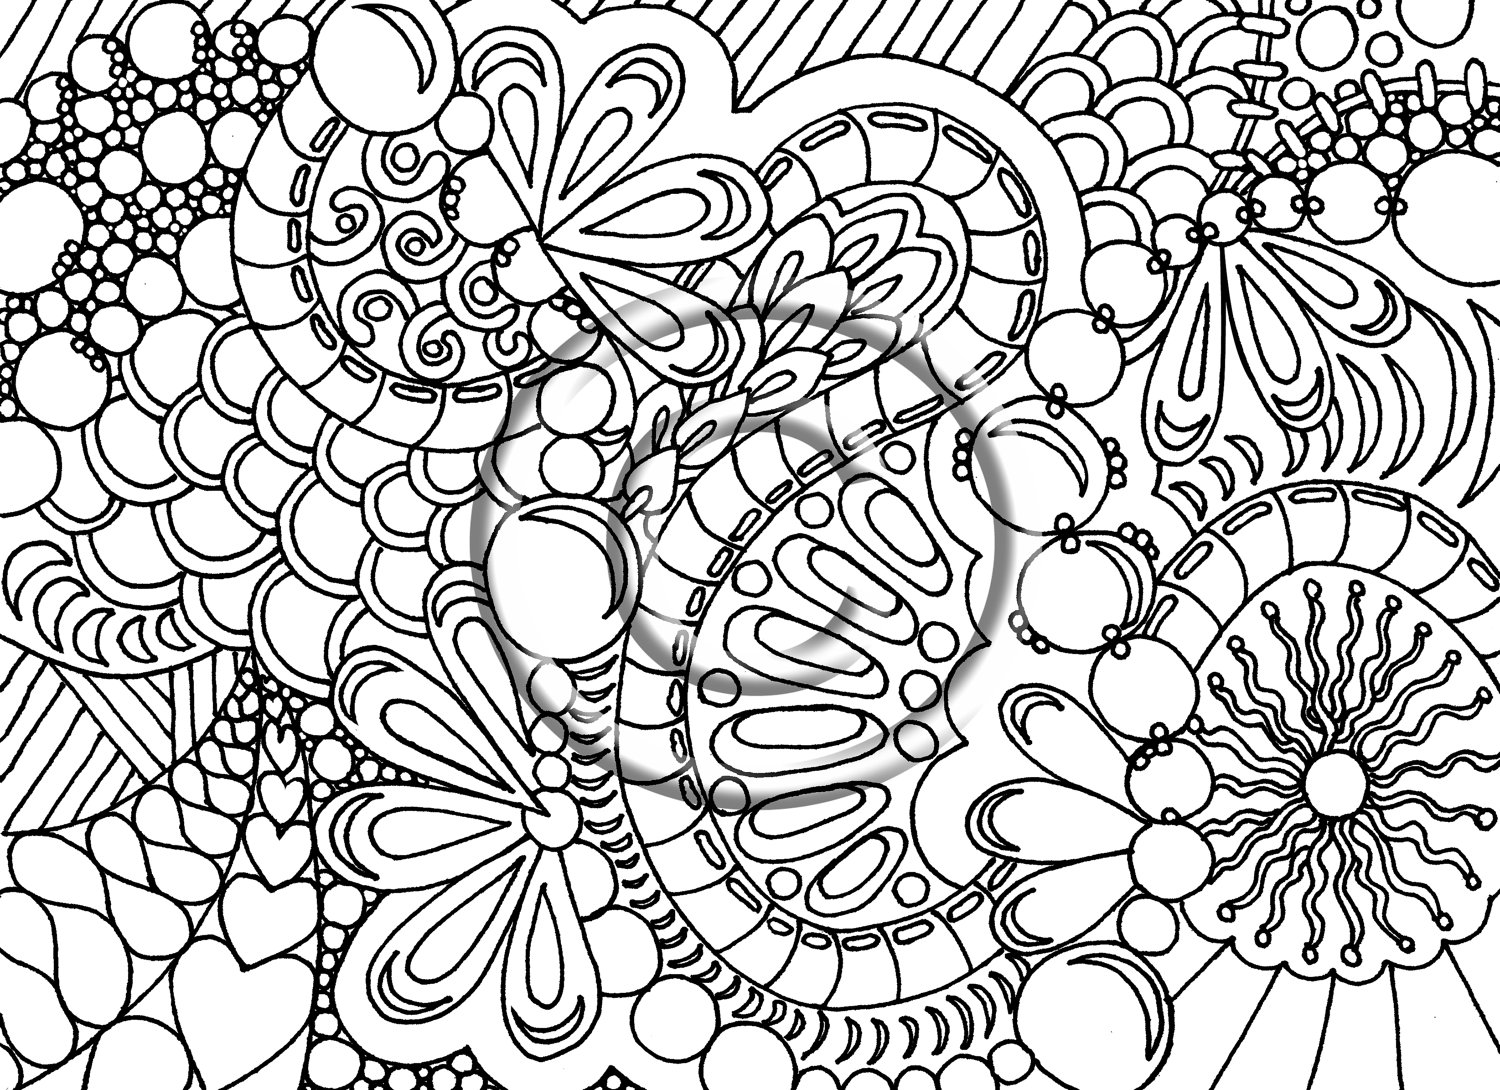 coloring worksheets hard coloring pages for adults difficult animals 44 coloring worksheets hard coloring